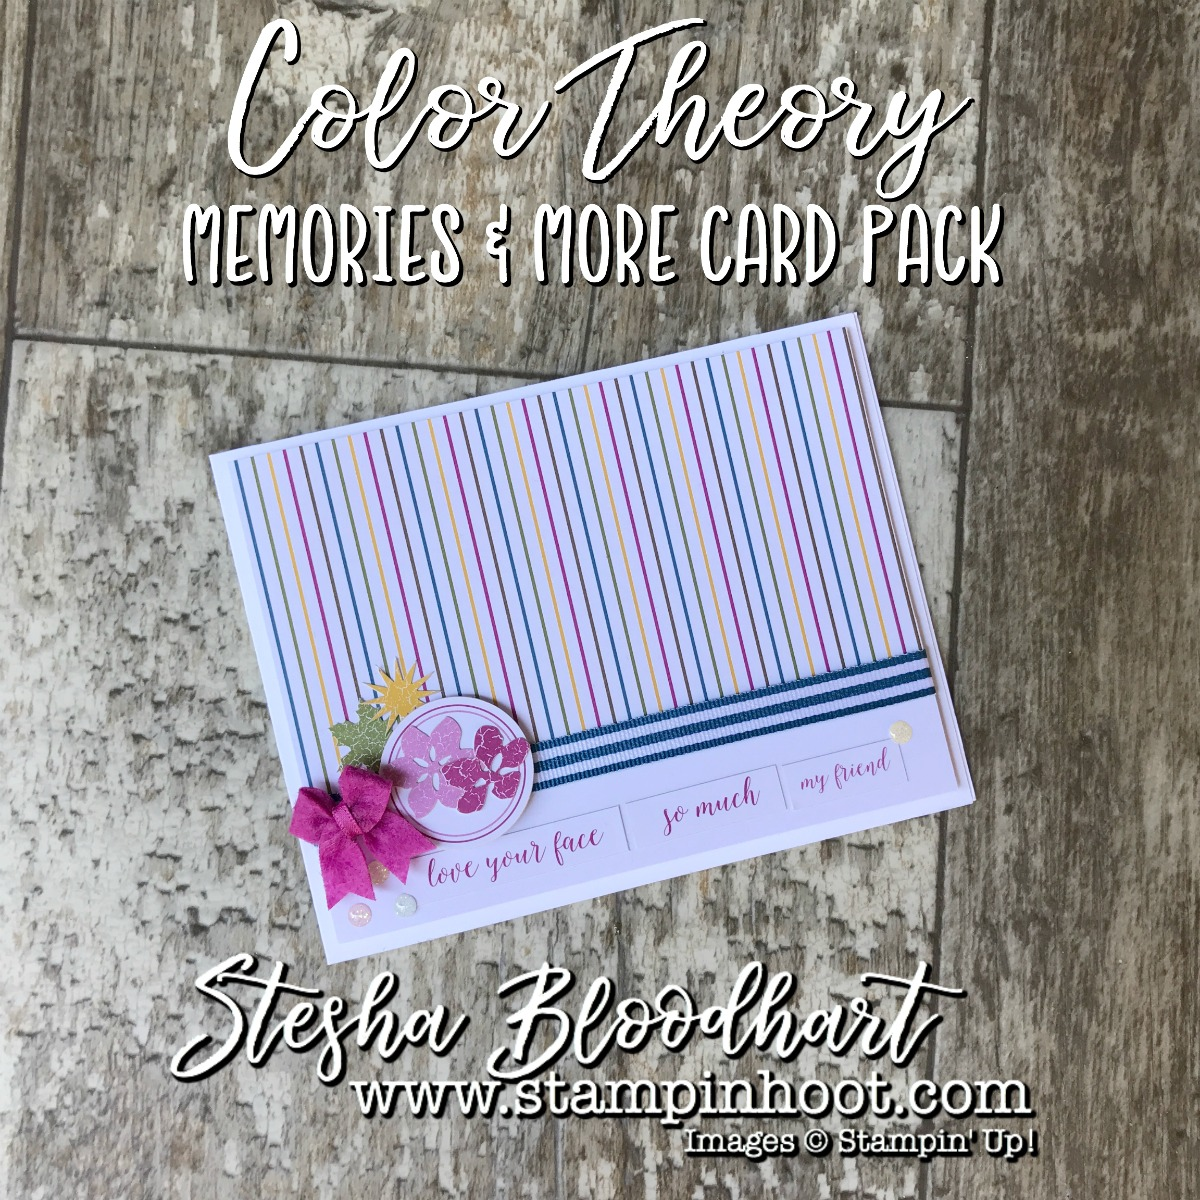 Color Theory Memories & More Card Packs by Stampin' Up! Make for Quick & Easy Cards-on-the-Go! No Stamps Necessary! See details on my blog! Stampin' Hoot! Stesha Bloodhart #memories&more #stampinup #stampinhoot #quickcards #papercrafts #scrapbooking #cardmaking #handmadecrafts #ididthis #demonstrator